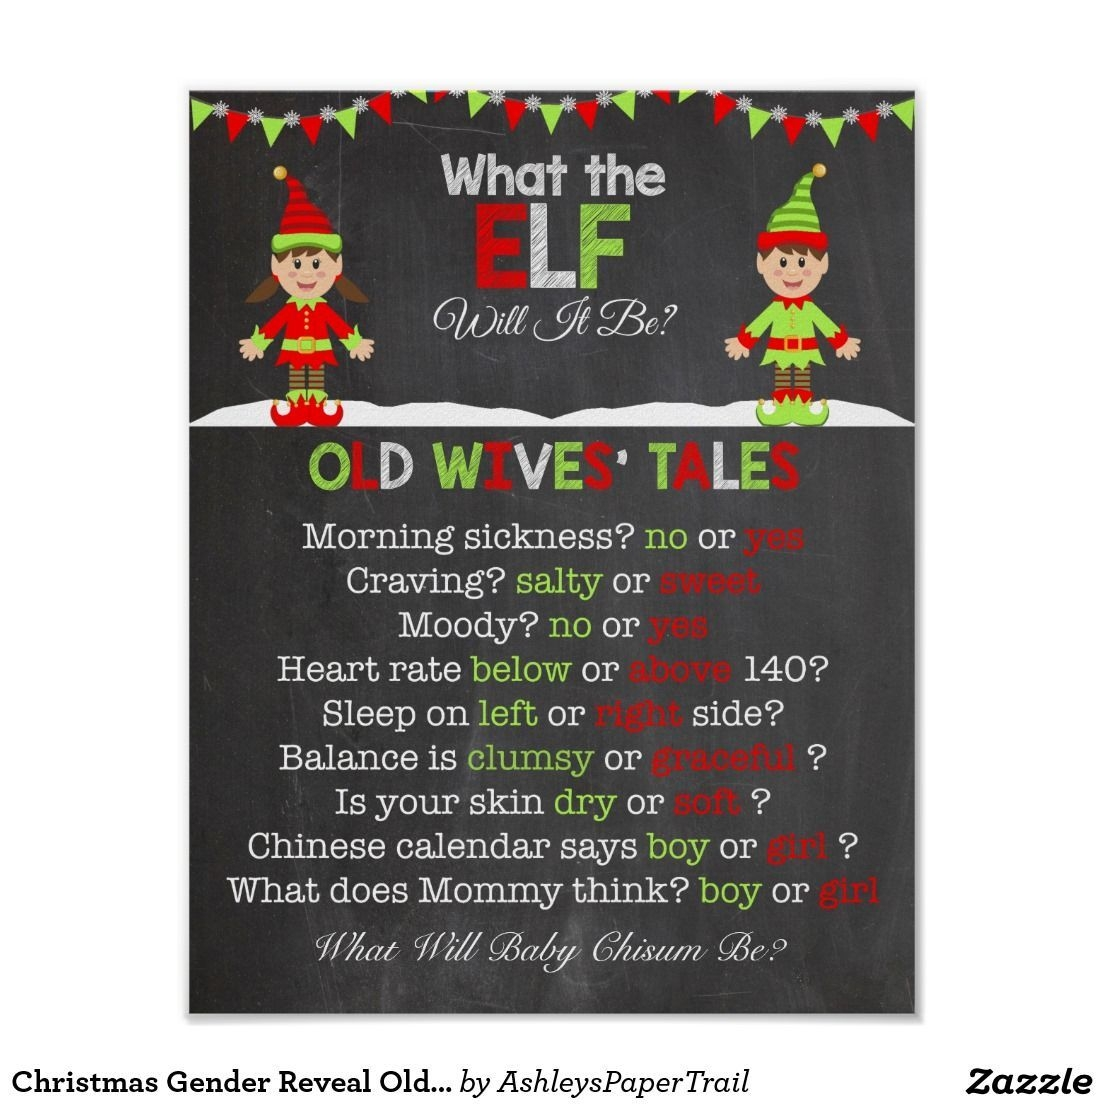 Christmas Gender Reveal Old Wives' Tales Poster | Zazzle